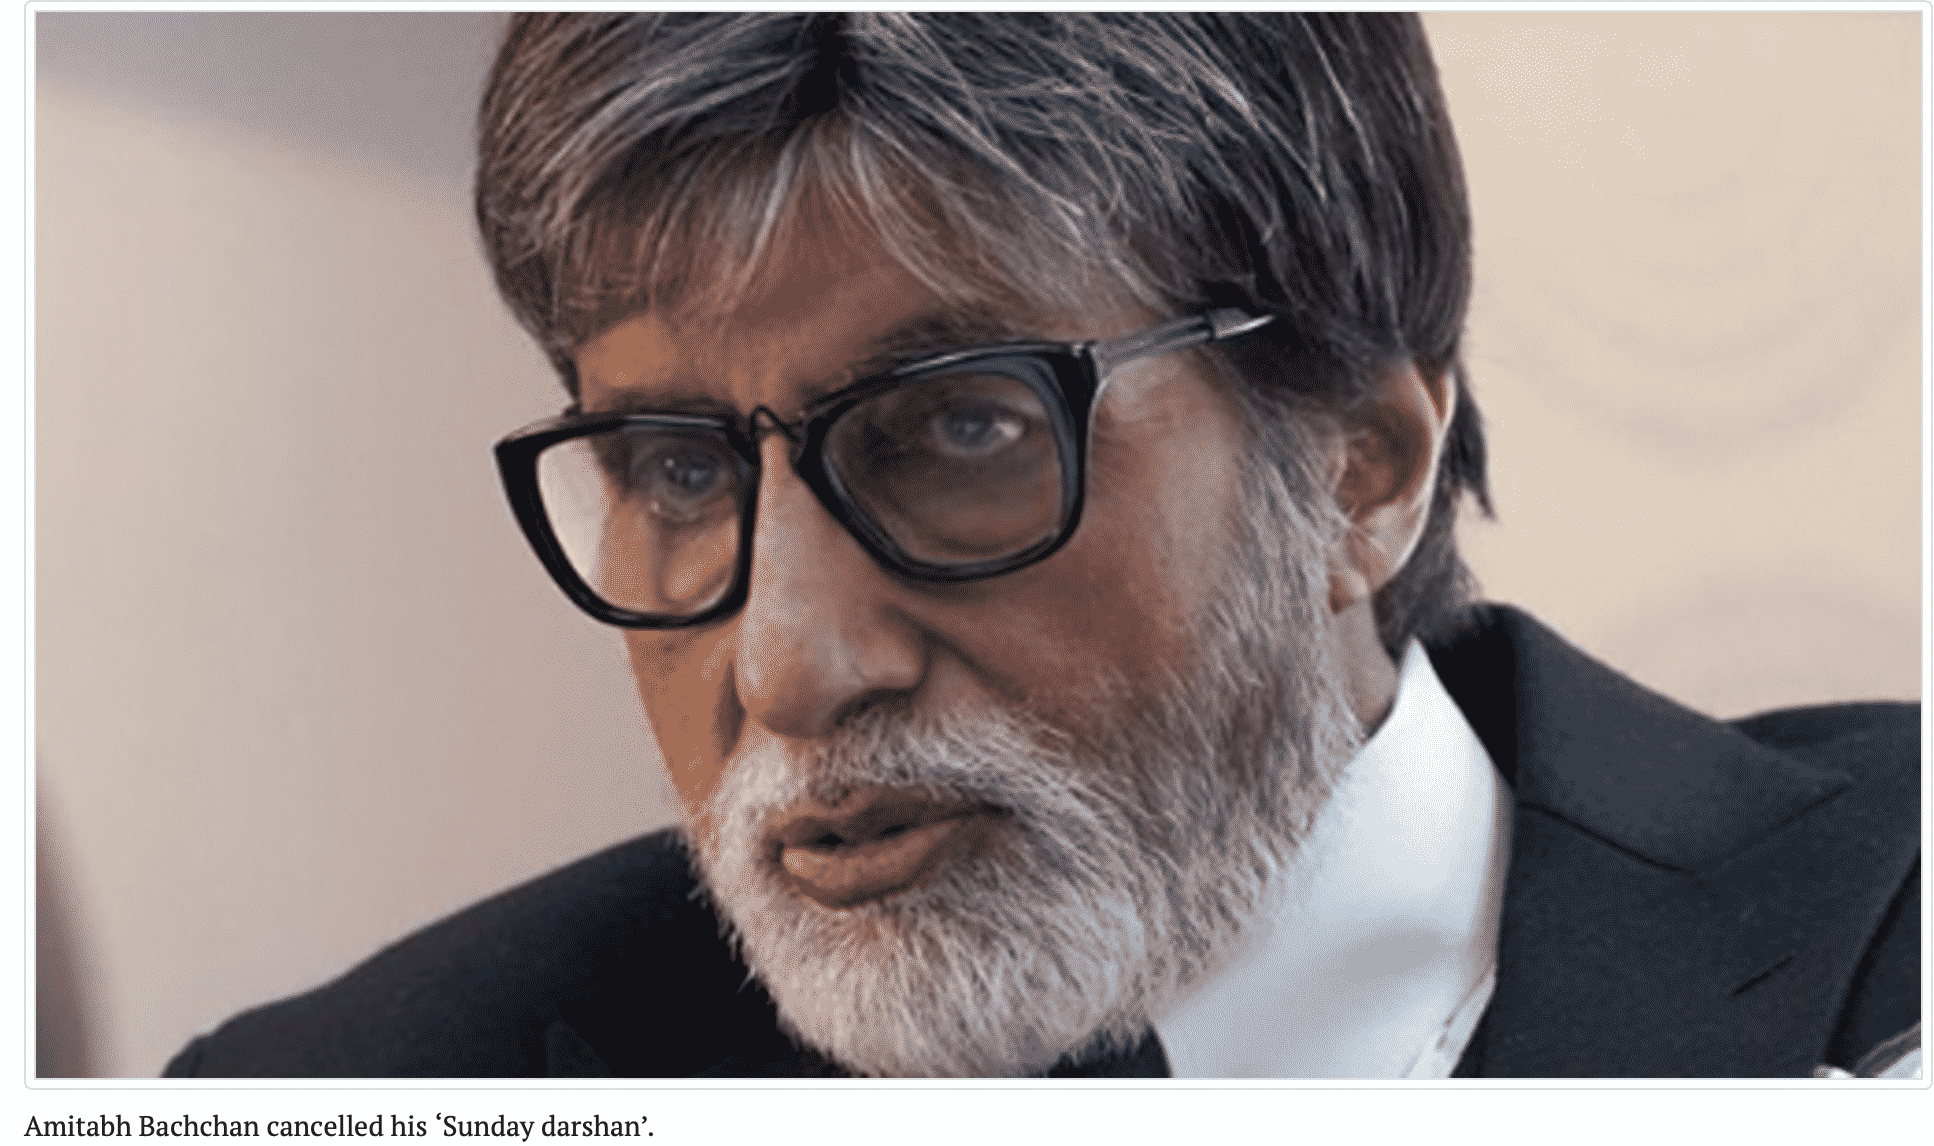 Amitabh Bachchan cancelled his 'Sunday darshan'